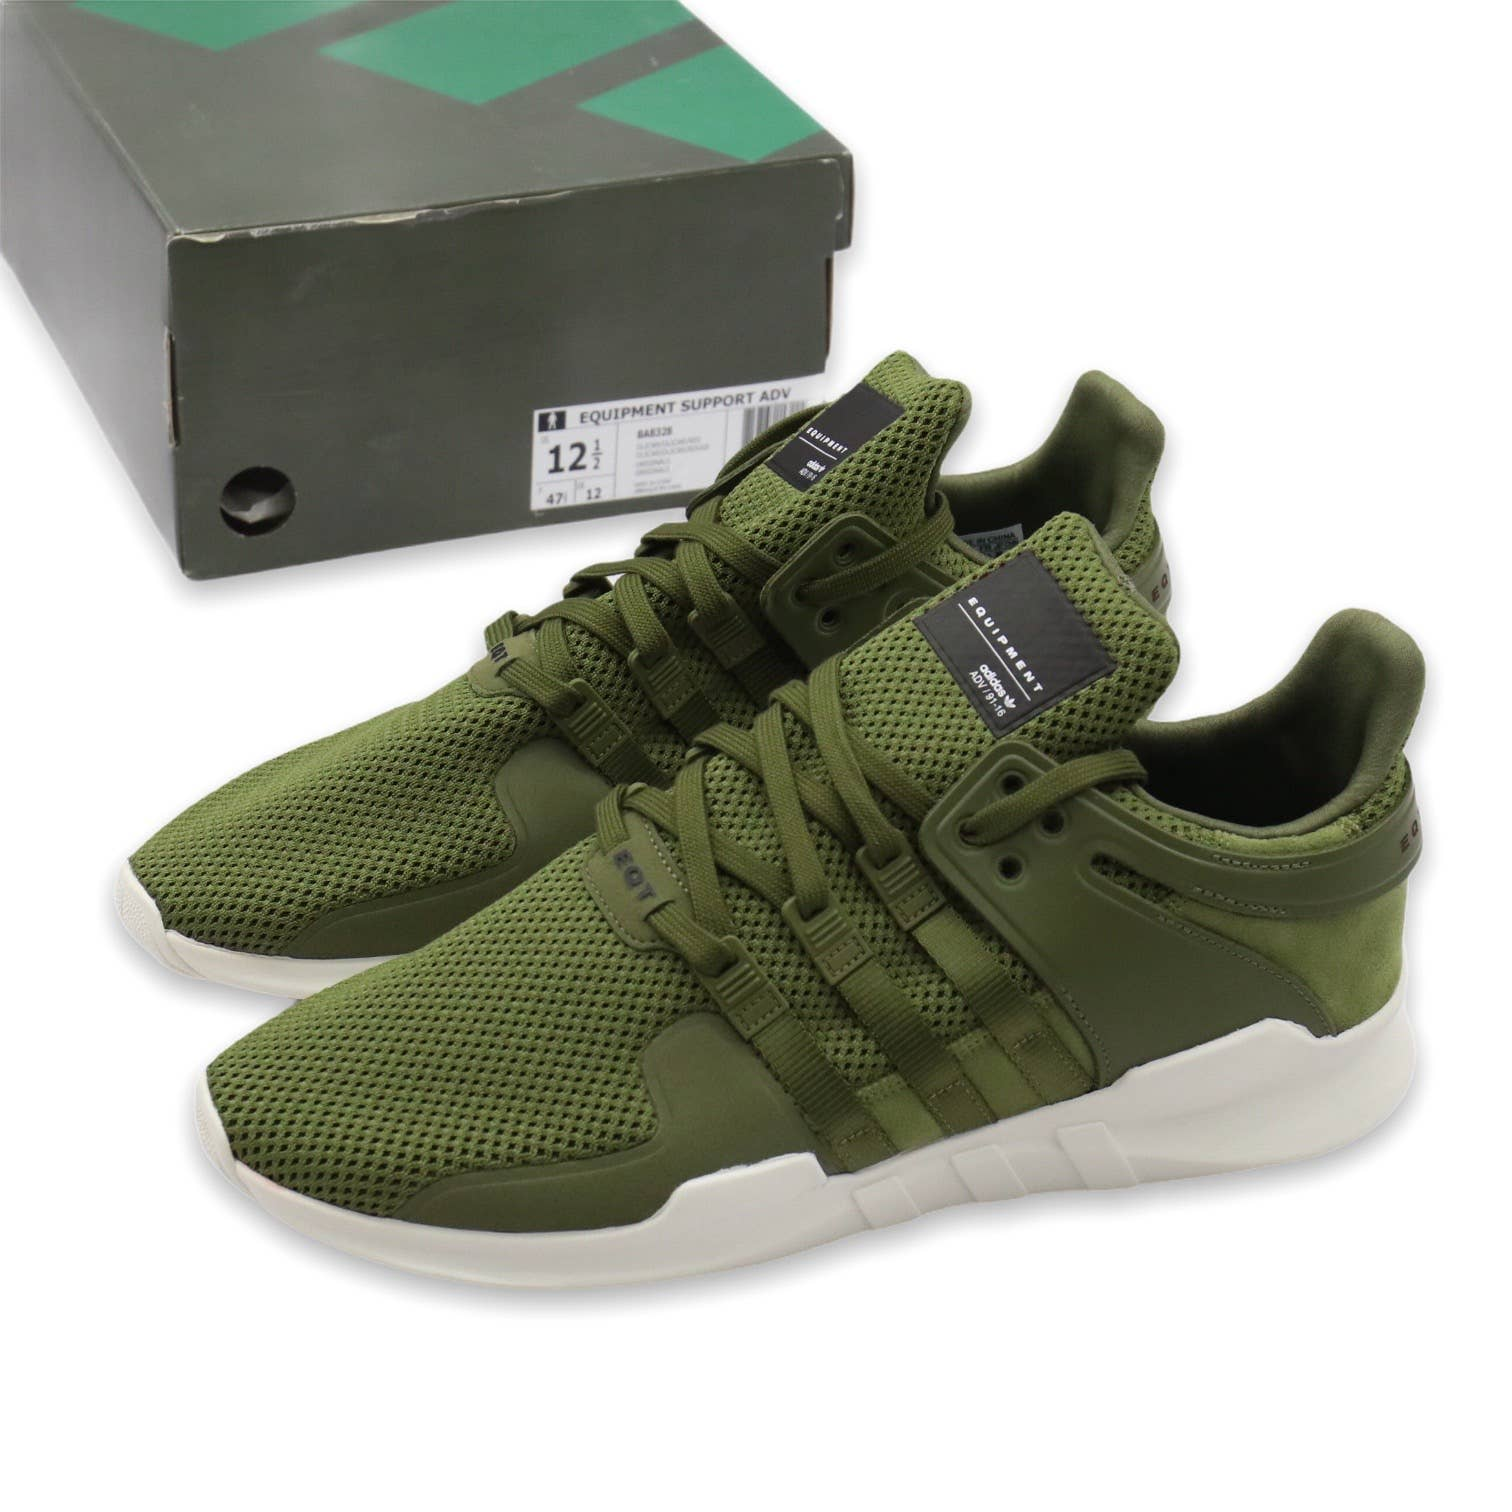 DS Adidas EQT Support ADV Olive Cargo Earth Green 12